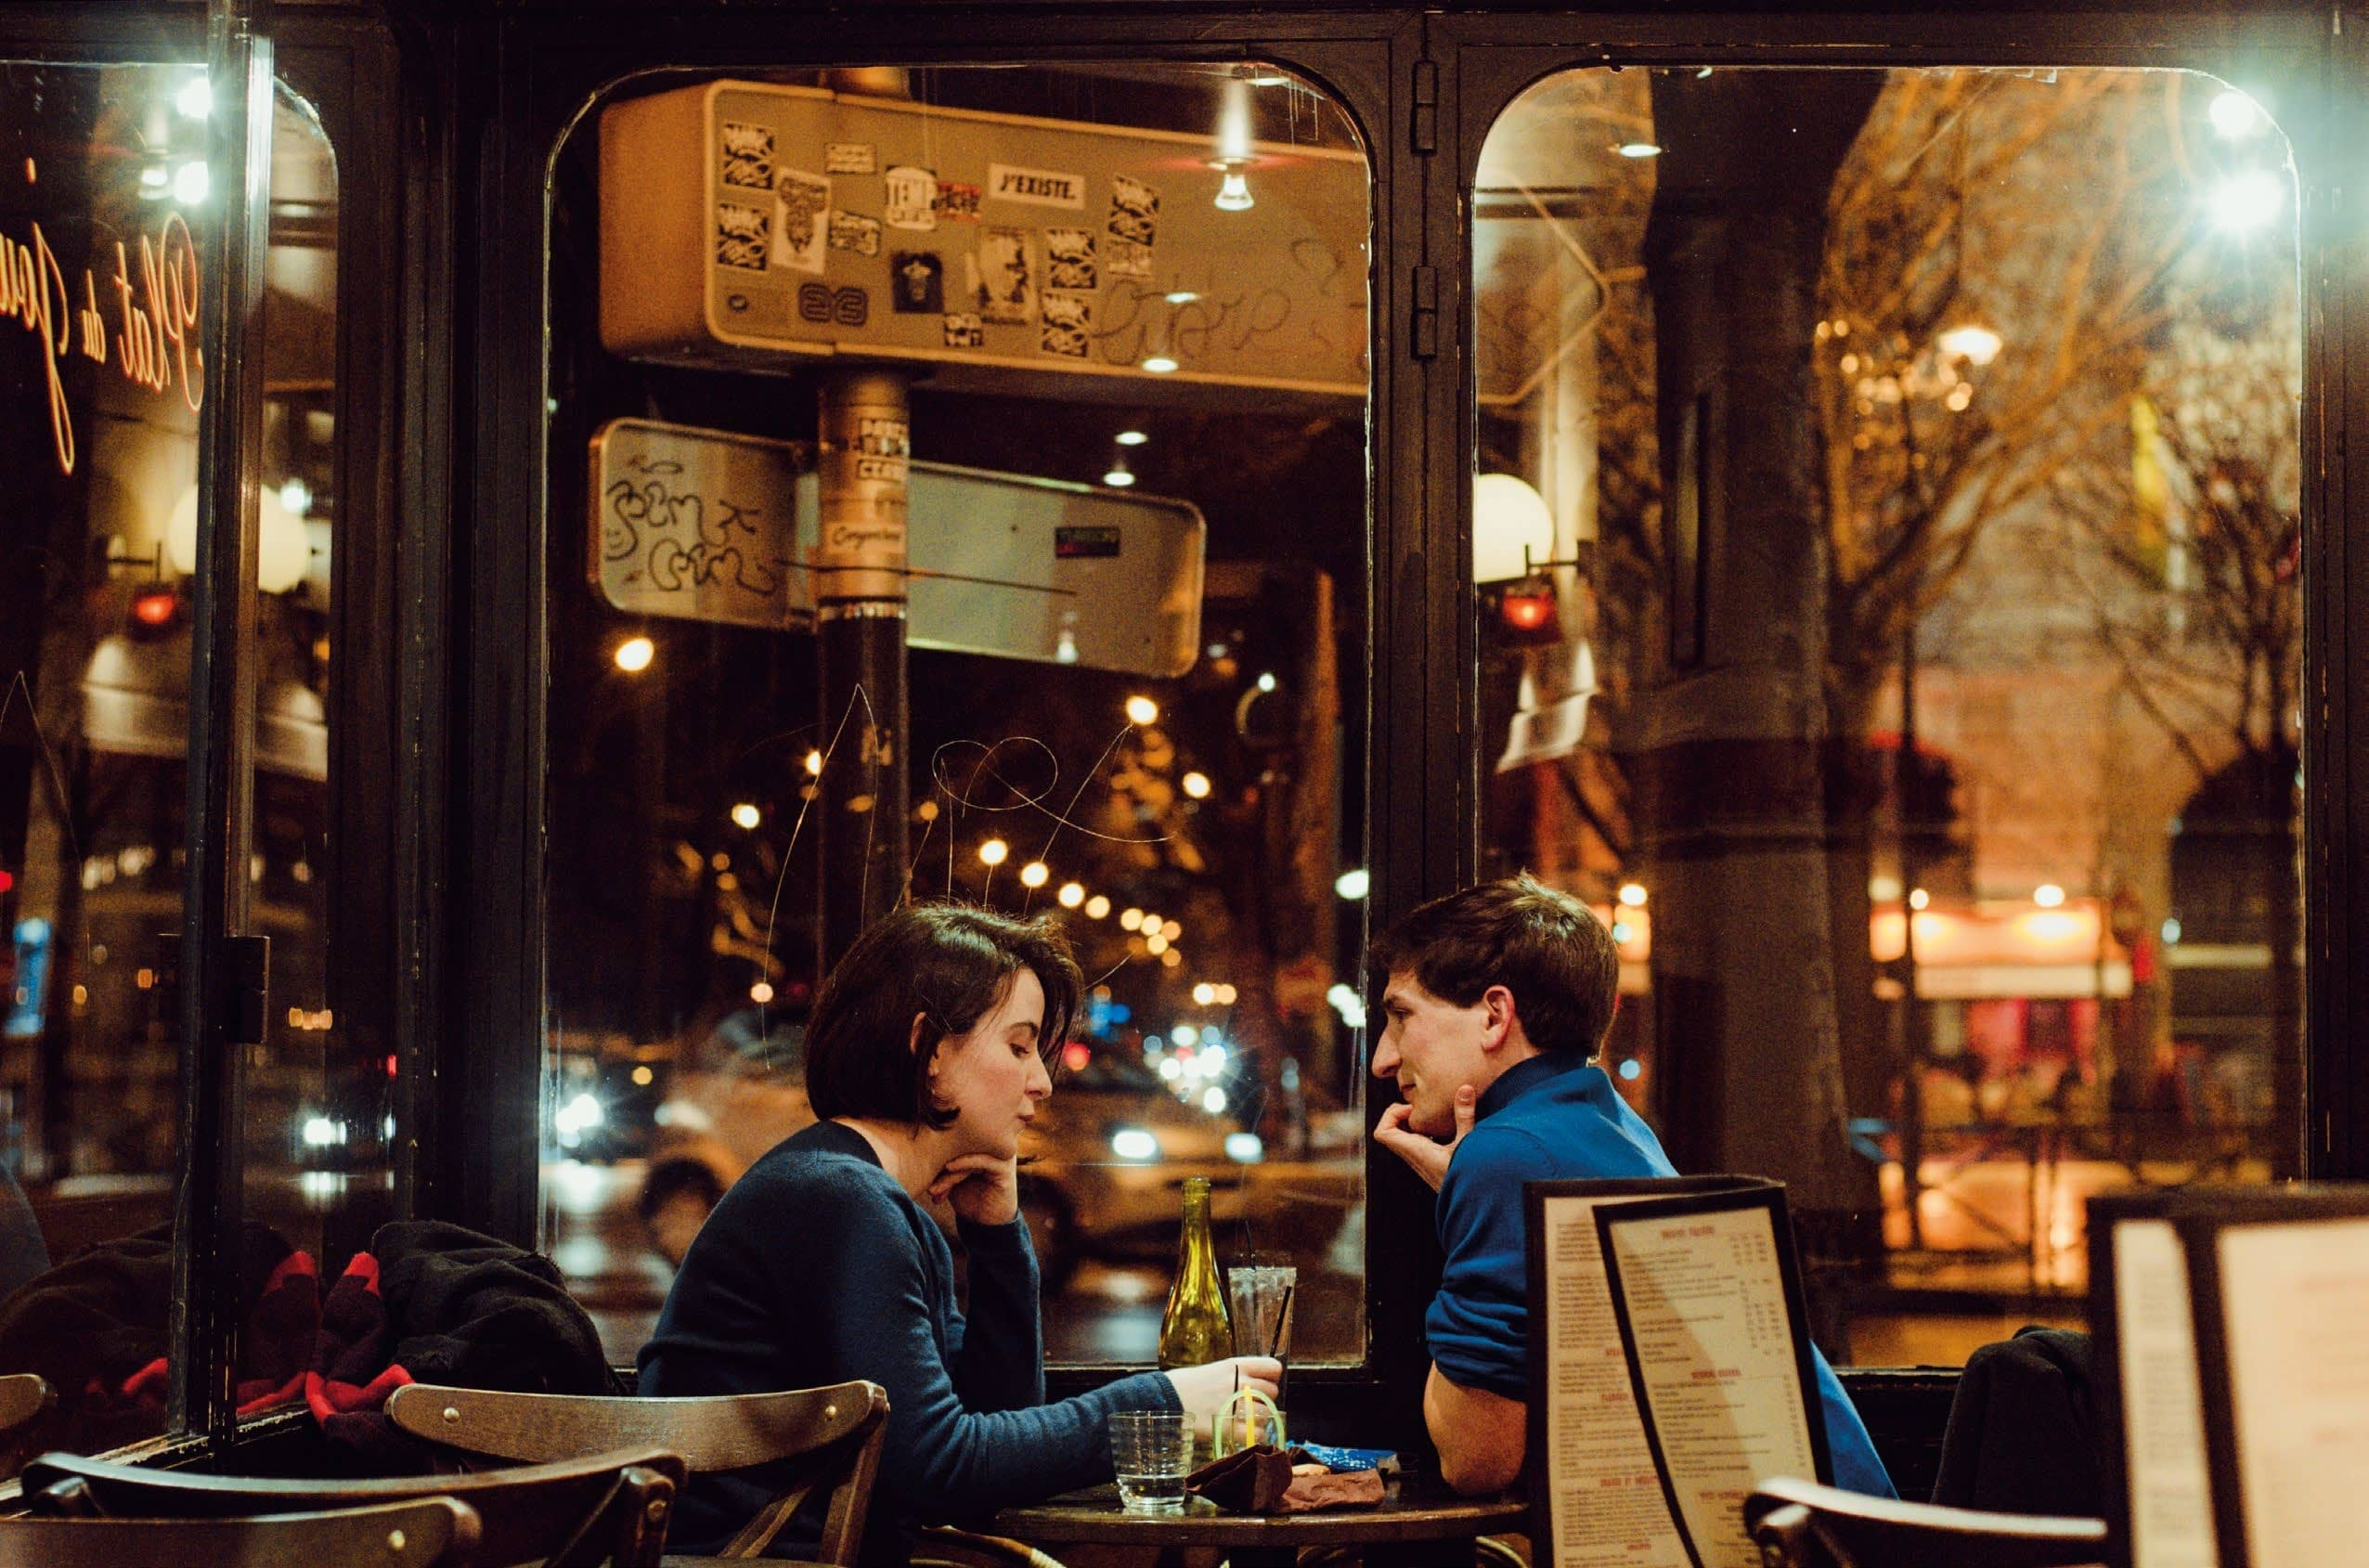 Going Dutch On Dates - Do You Insist Or Refrain?